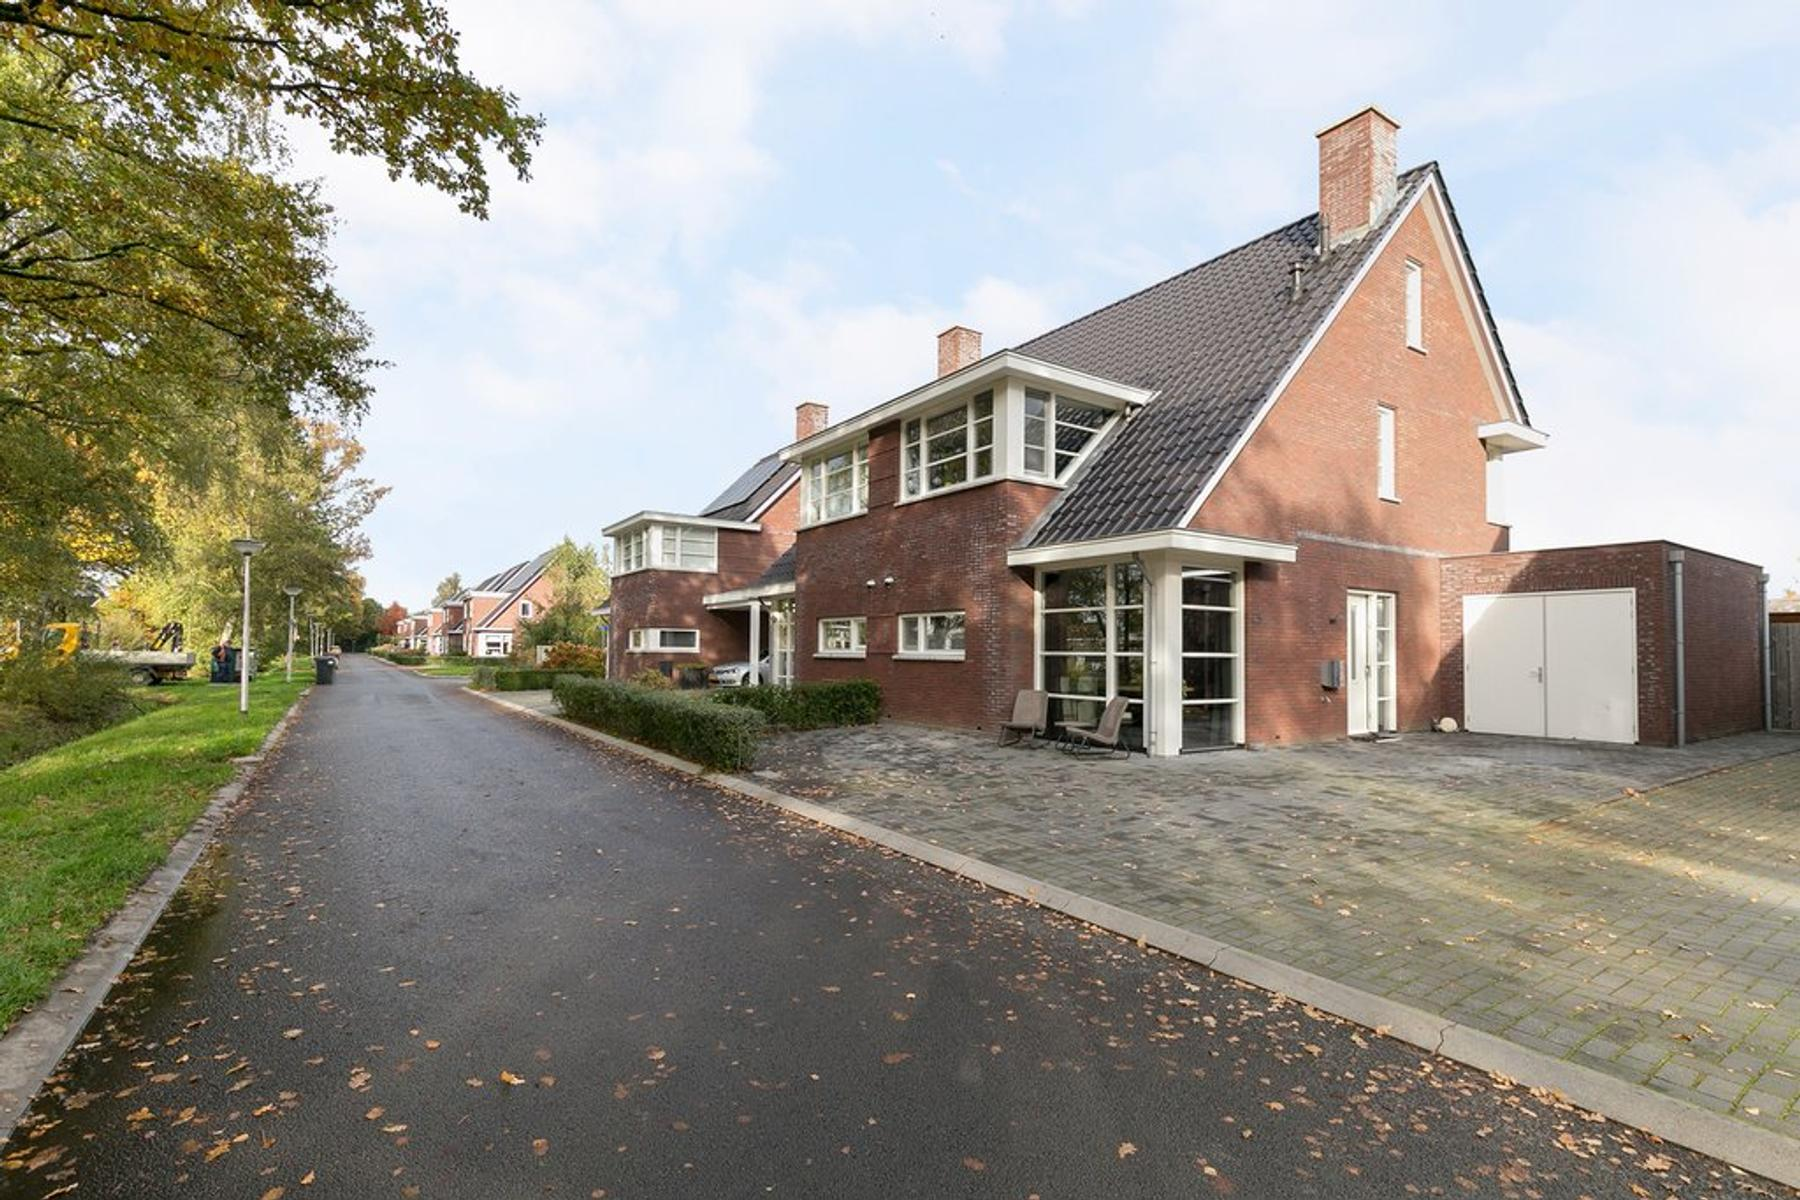 Klipper 25 in Meppel 7944 RK